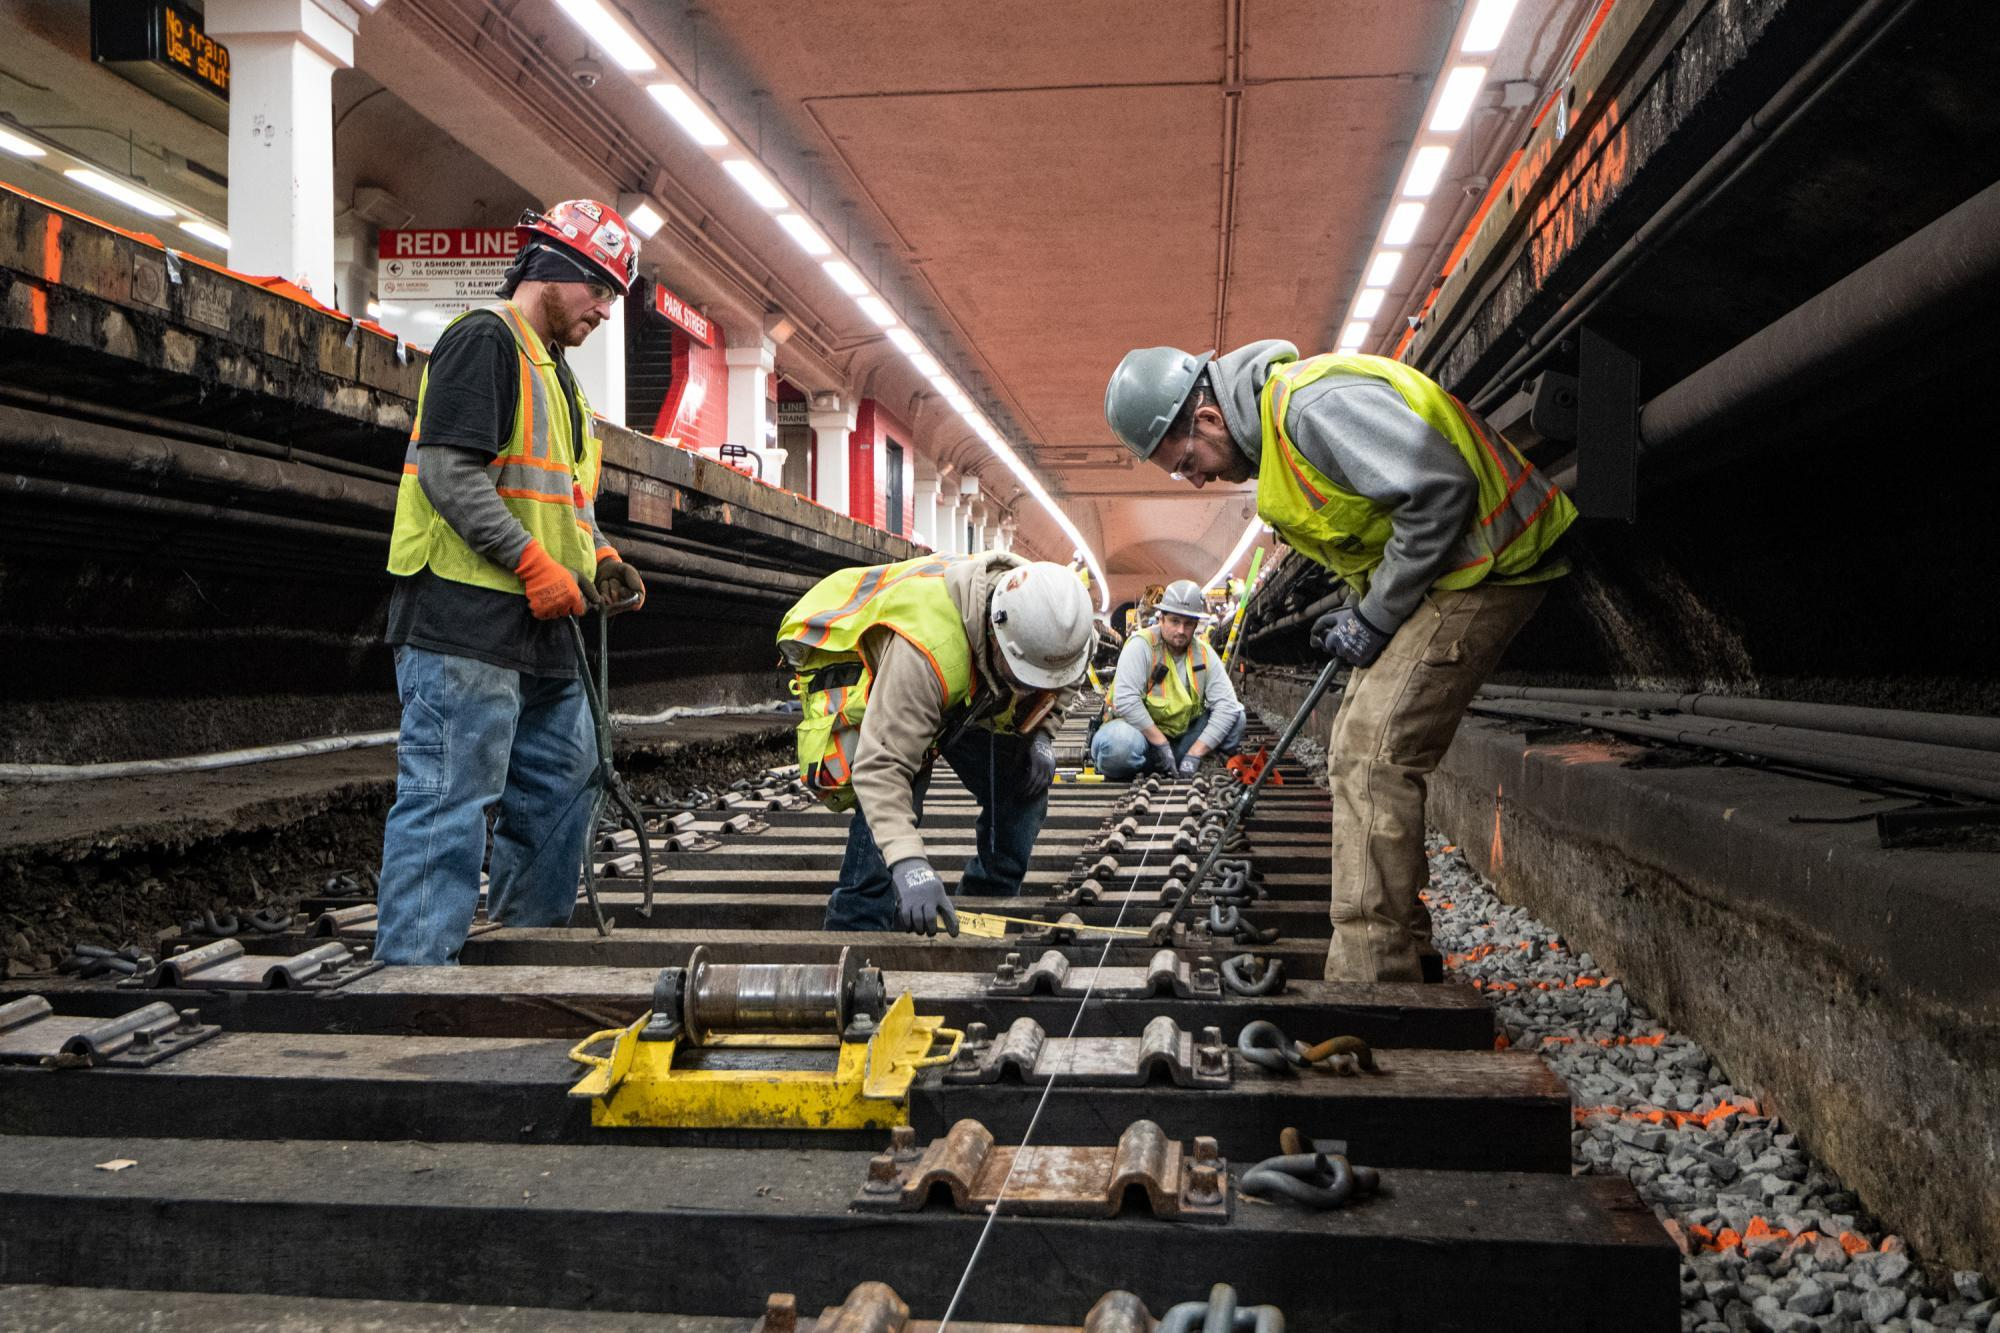 Crew members work on track replacement at Park St during the December 6 – 8, 2019, Red Line weekend shutdown